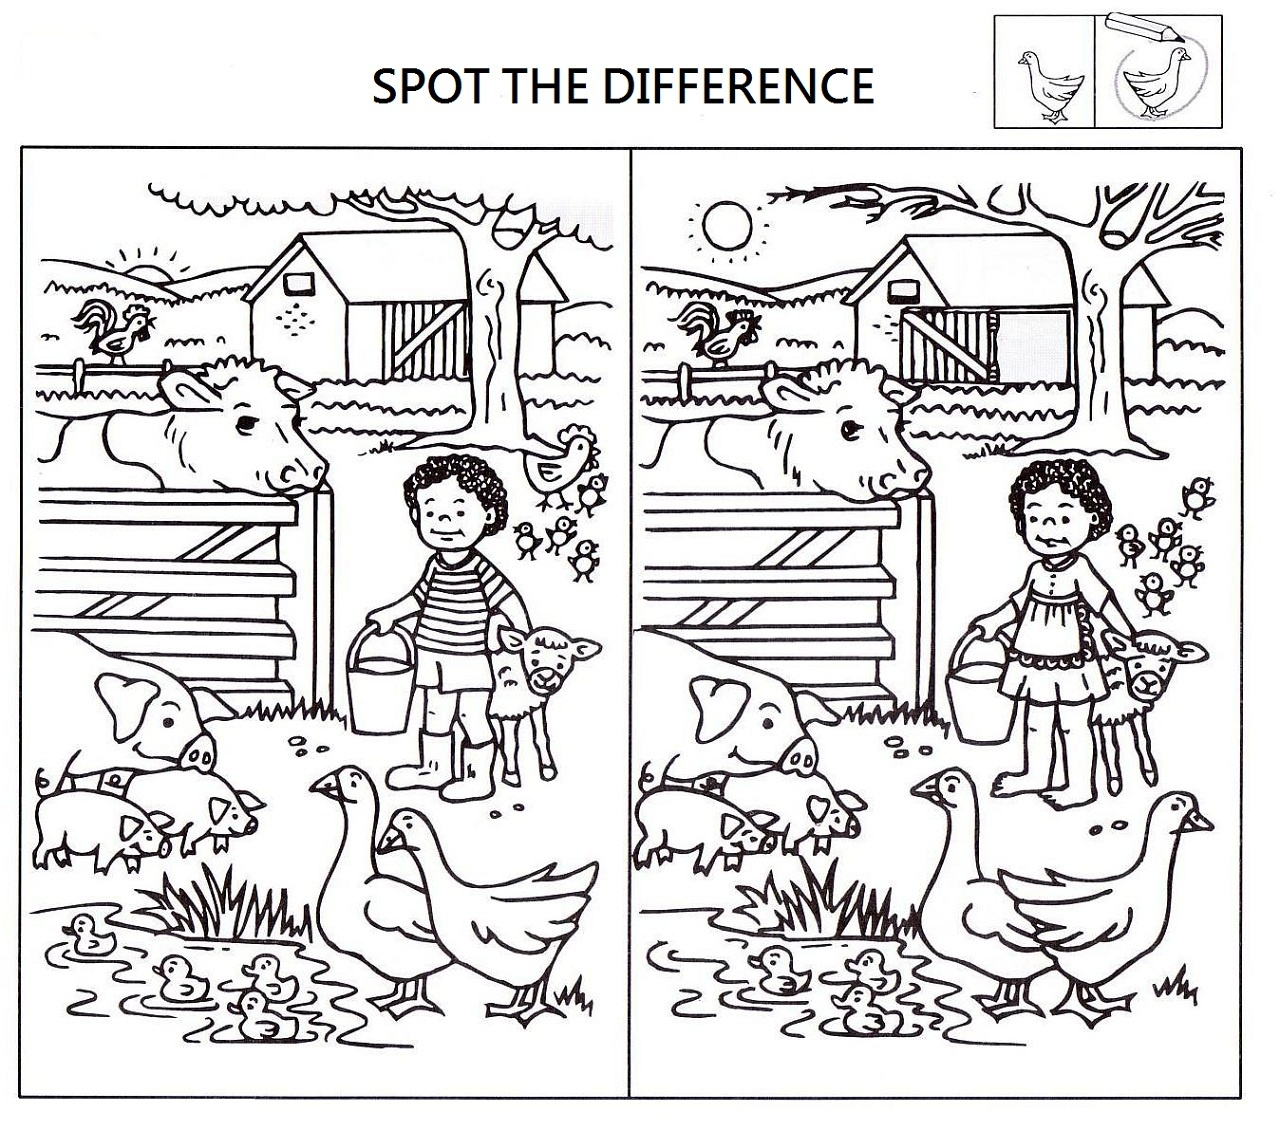 Spot The Difference Worksheets For Kids | Activity Shelter - Free Printable Spot The Difference For Kids